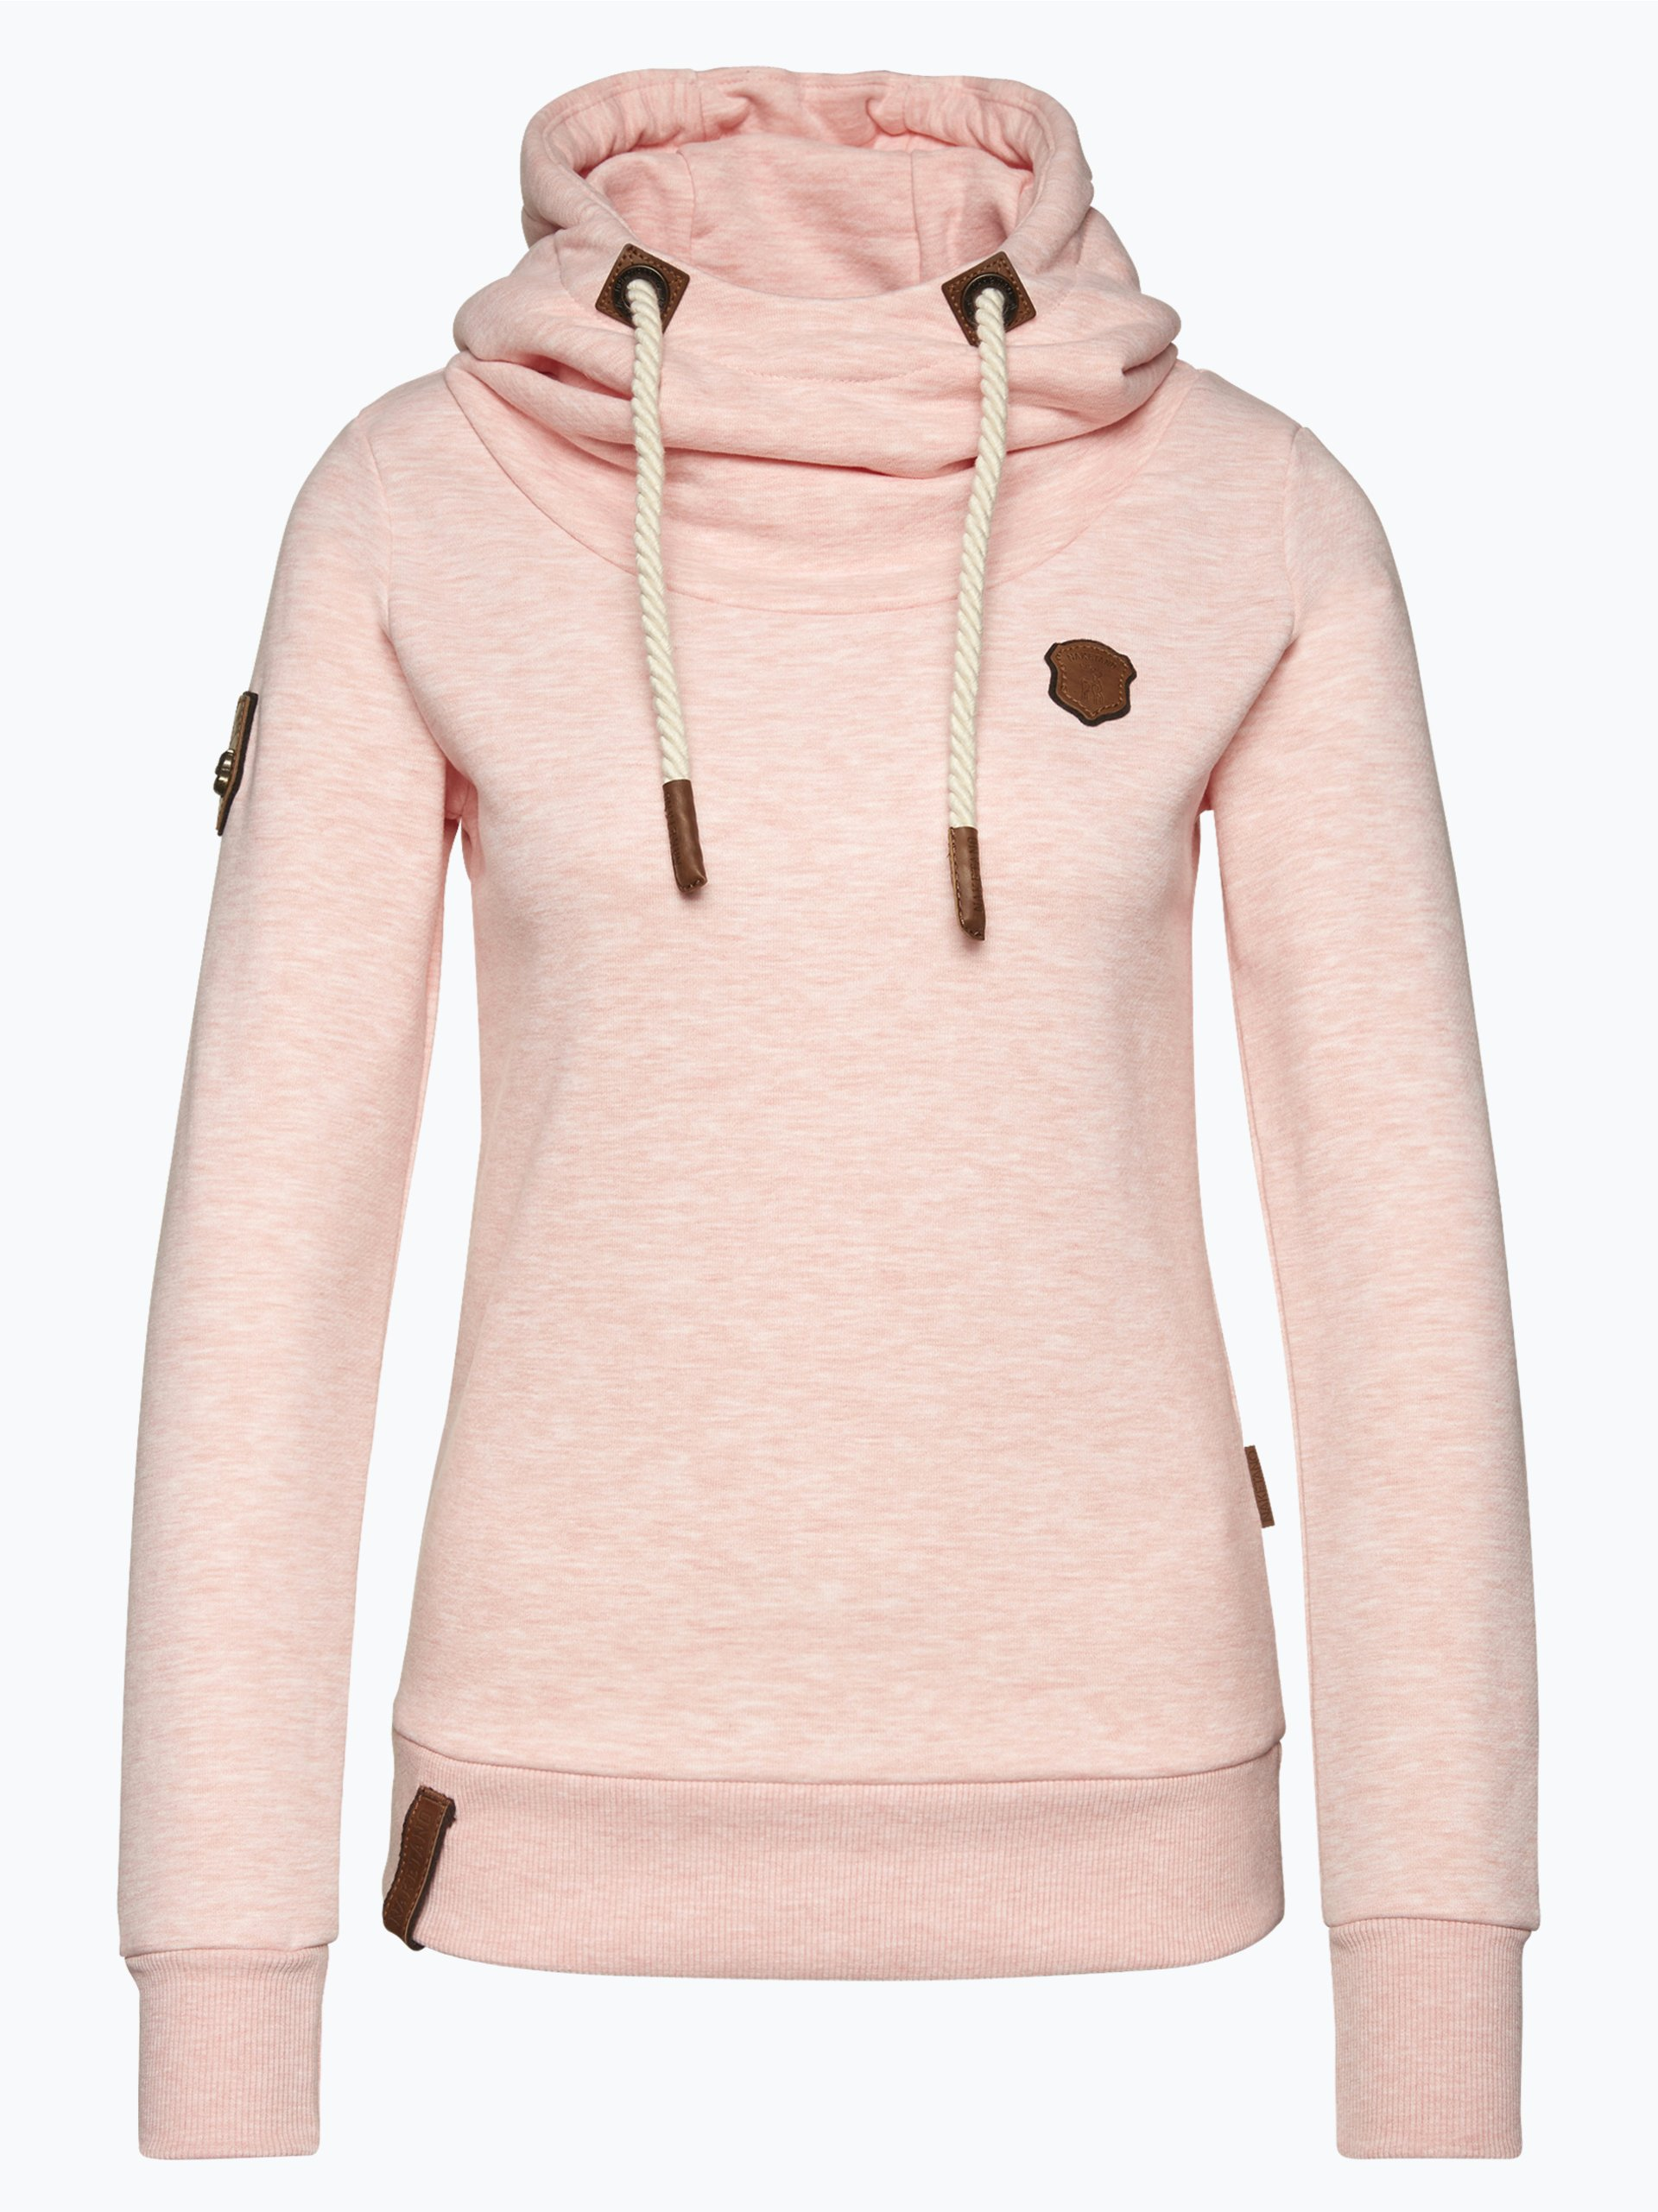 naketano damen sweatshirt rosa uni online kaufen peek und cloppenburg de. Black Bedroom Furniture Sets. Home Design Ideas